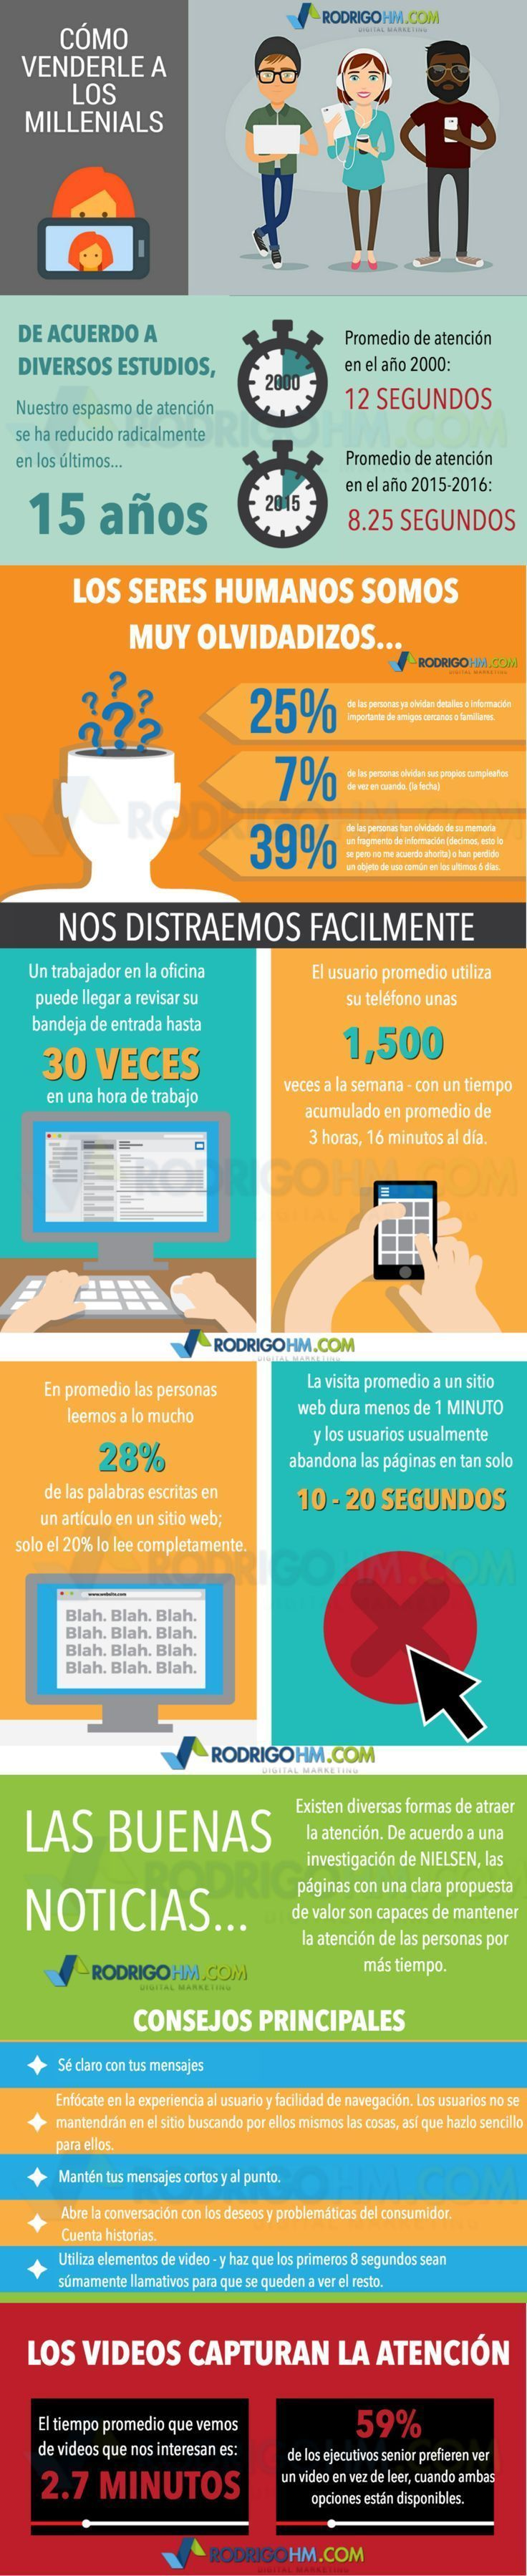 top best market economy ideas pinterest where mardi formas optimizar sitio para tra fico redes sociales